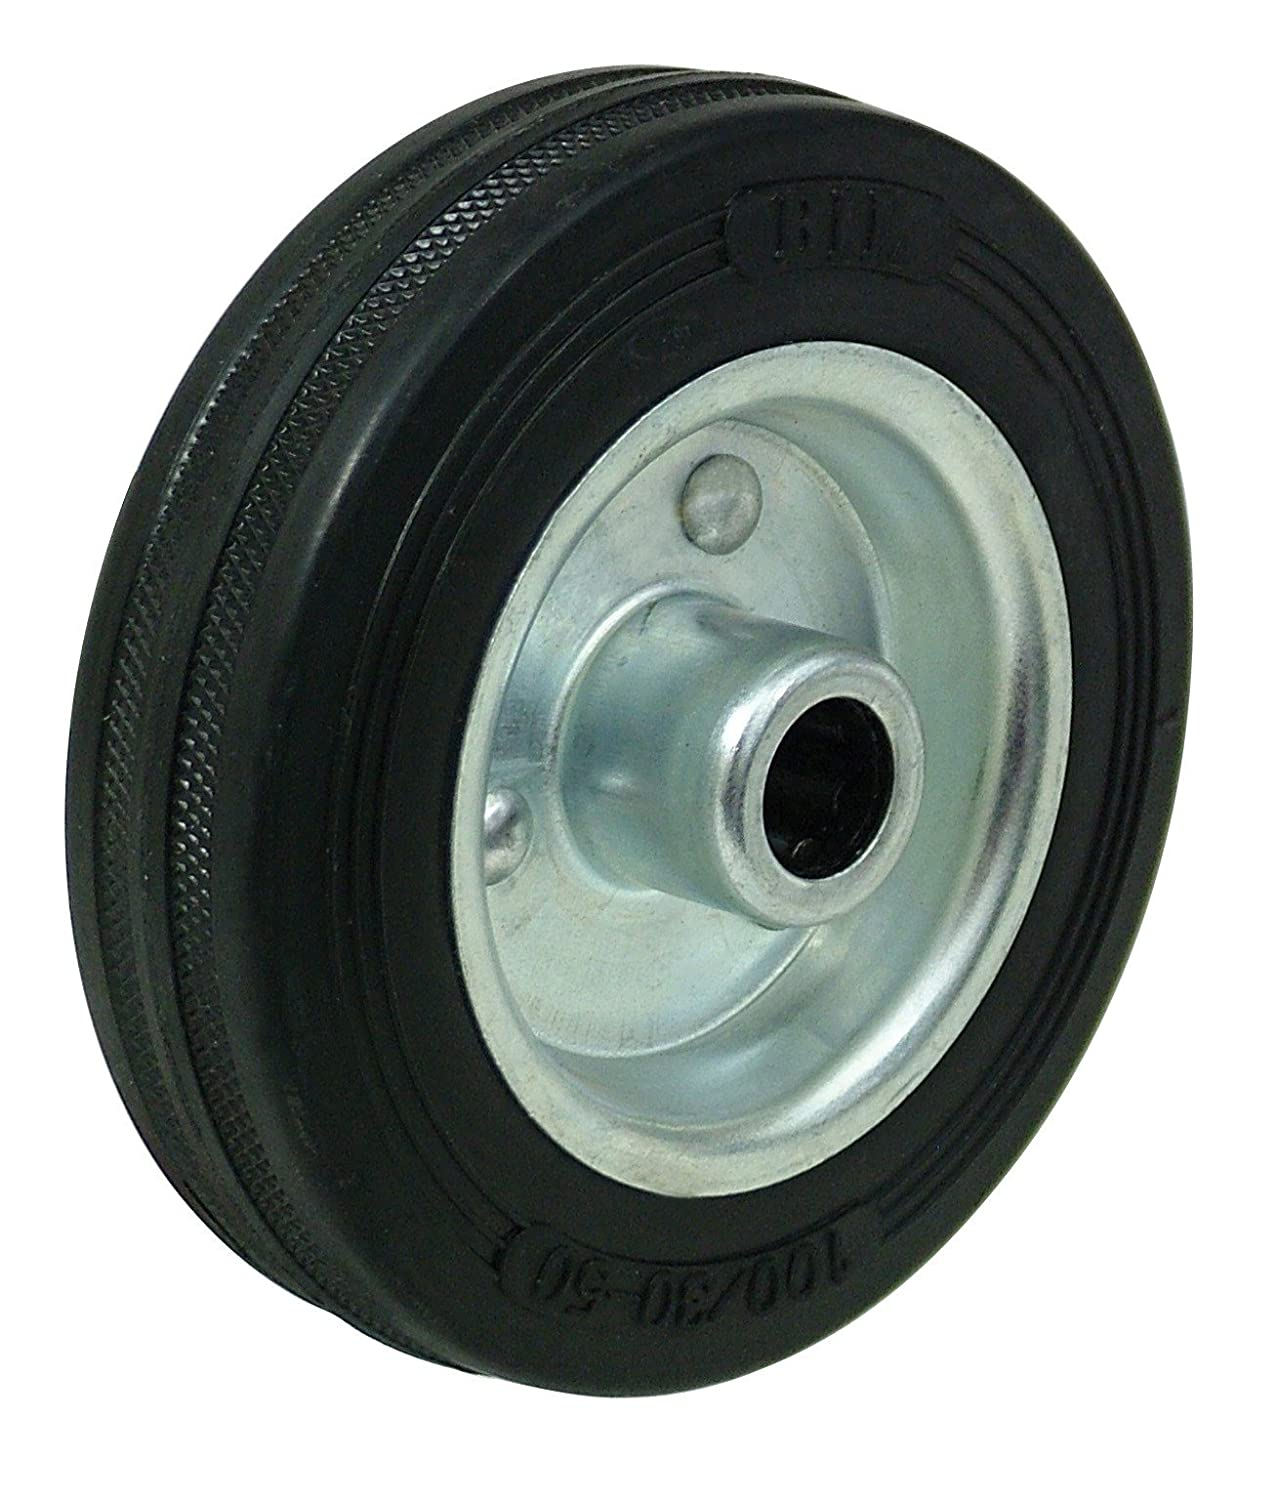 BZML100WBSRB 100mm Black Rubber Tyre Castor Wheel BIL